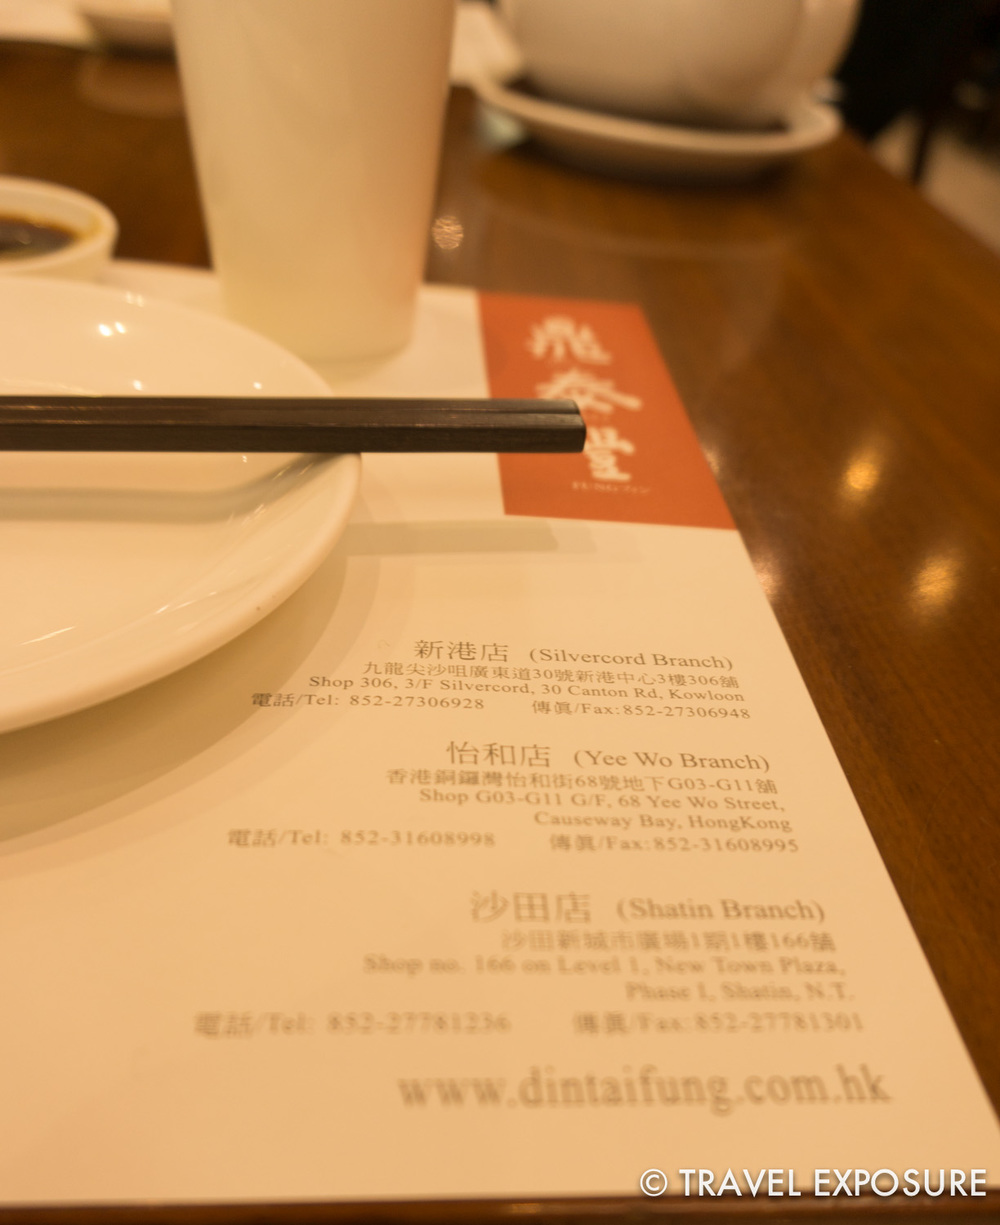 Menu atTim Ho Wan, famous for their dim sum and for being one of the cheapest Michelin-starred restaurants in the world